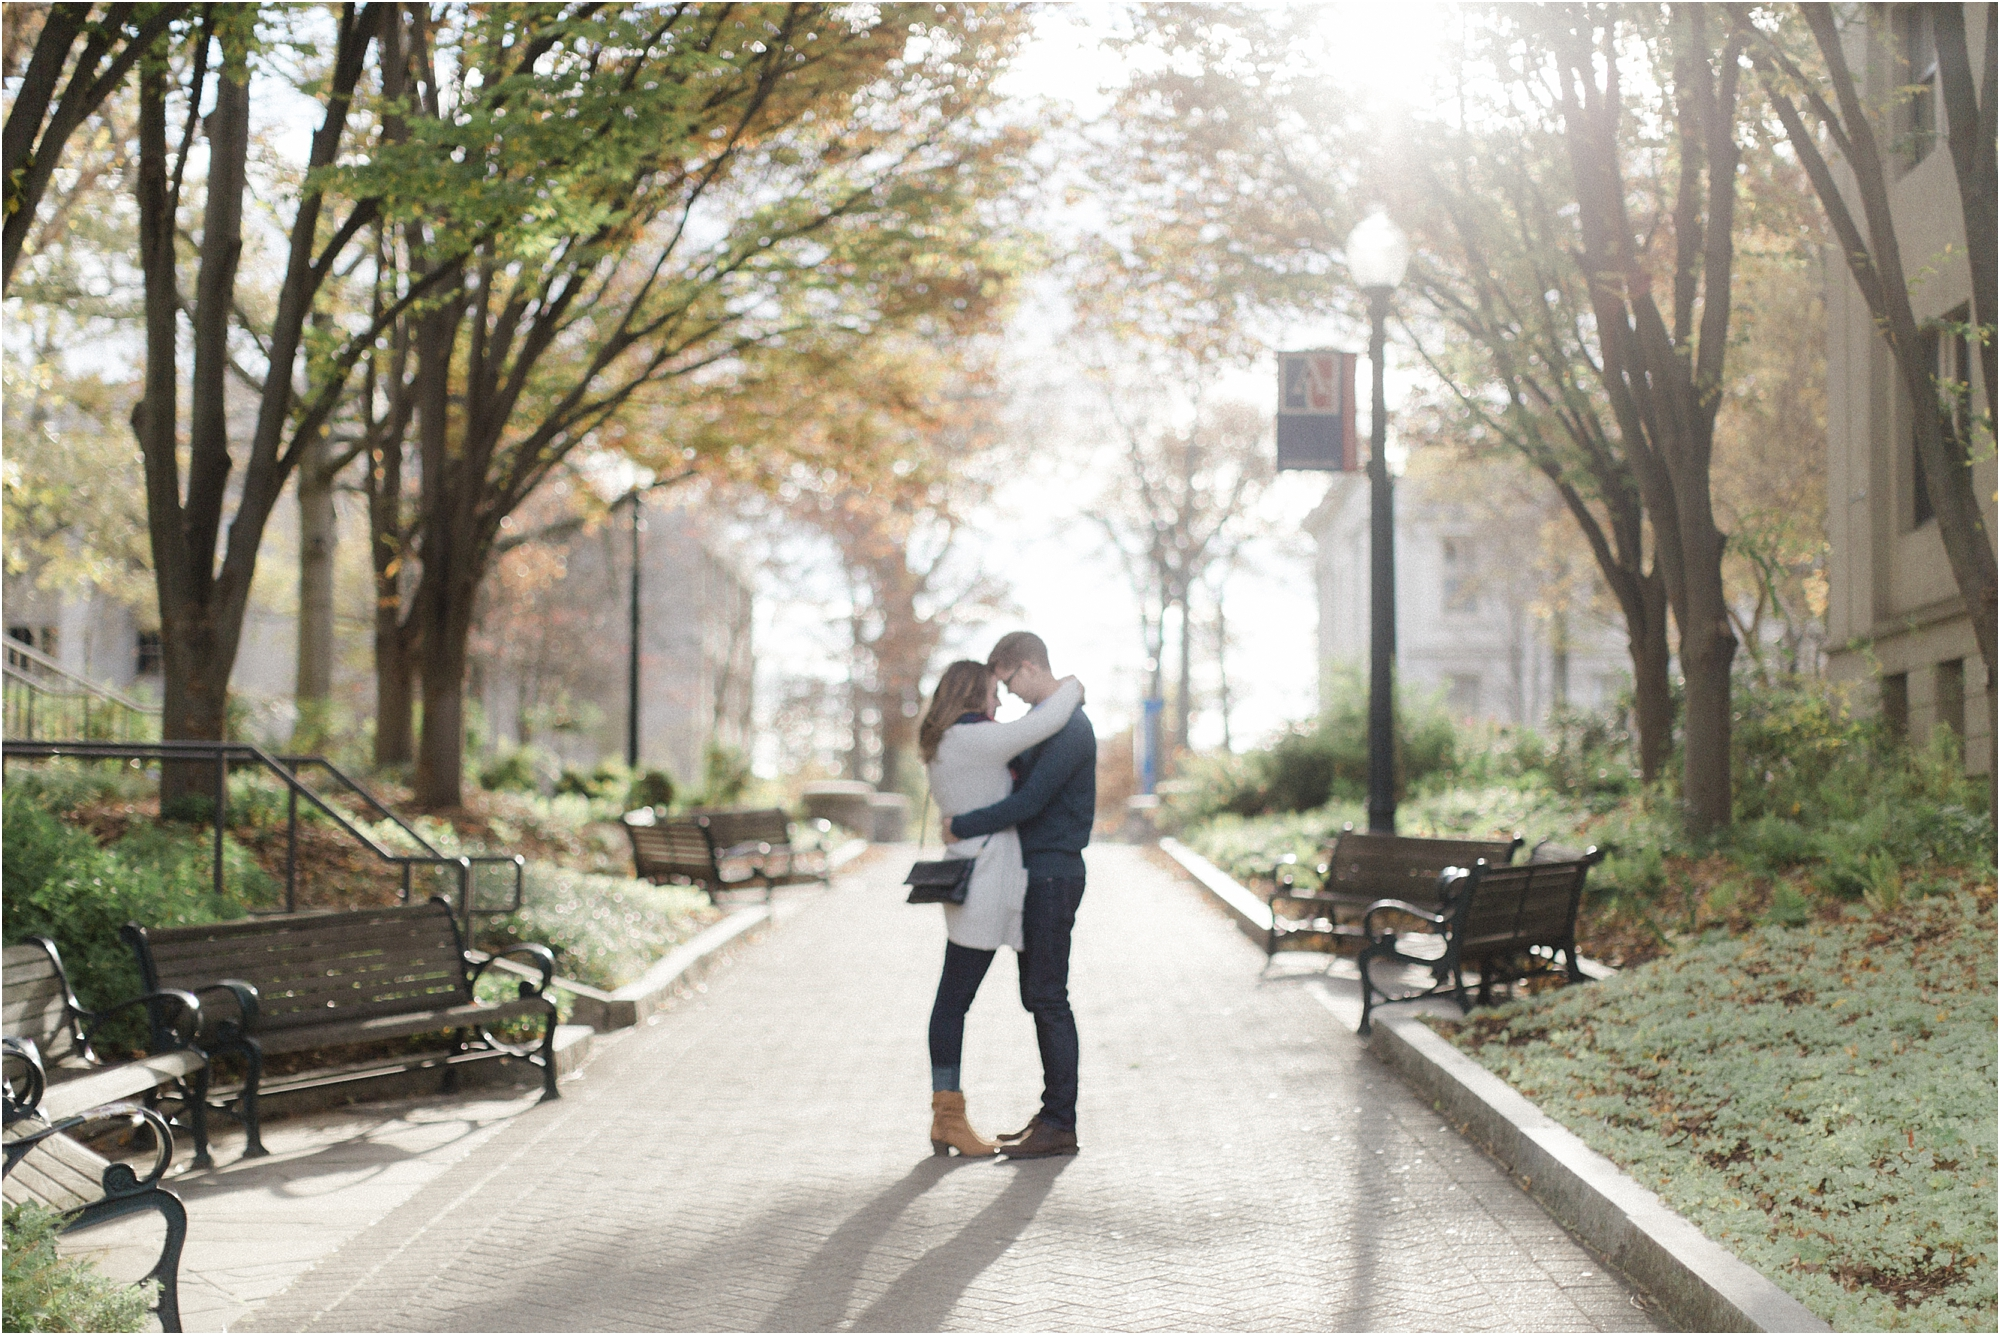 stephanie-yonce-photography-old-town-alexandria-fall-engagement-photos_0013.jpg